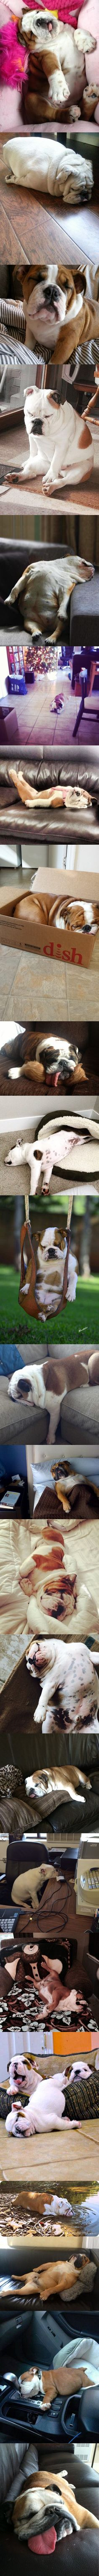 It's official, English Bulldogs can sleep at absolutely any time and anywhere. We challenge you to find a location and time that a Bulldog wouldn't find a way to nap!